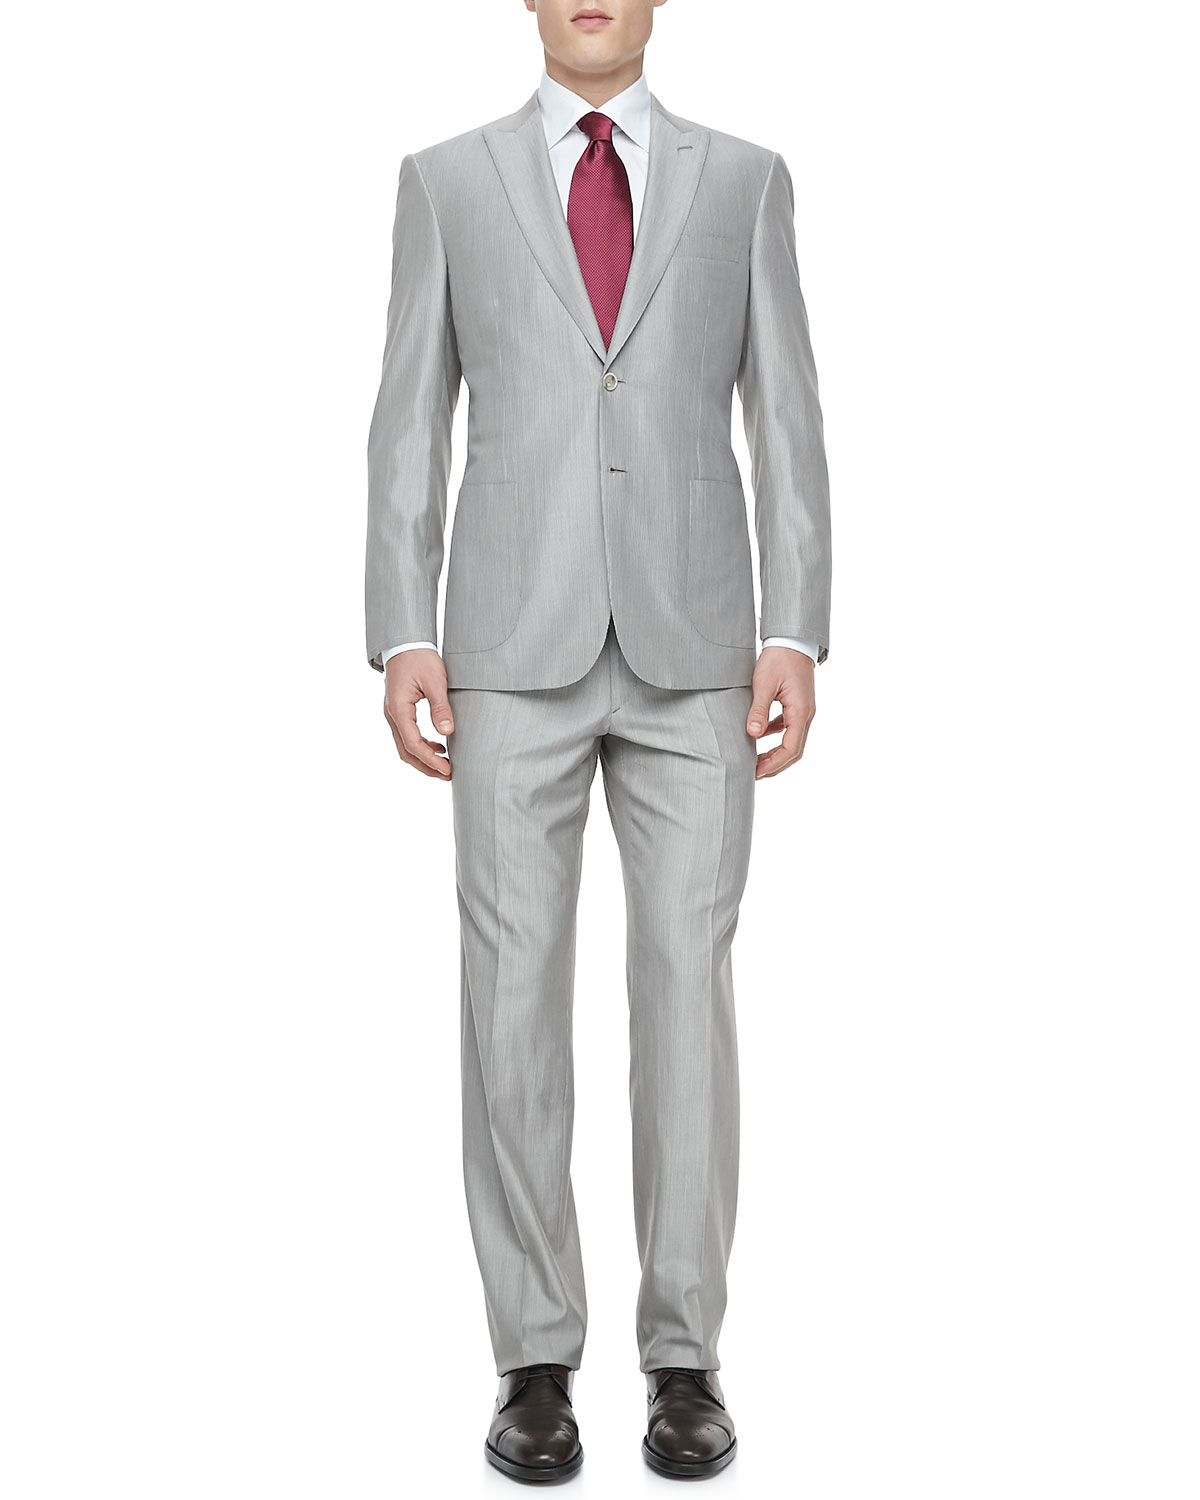 Men who appreciate unique fashion like urban mens dress wear and shop online for fancy style mens casual dress clothes and prefer to dress with style and flair like to wear Fashionable Urban Style 2 Piece Mens Walking Suits with wide leg pants to Weddings and other kinds of .